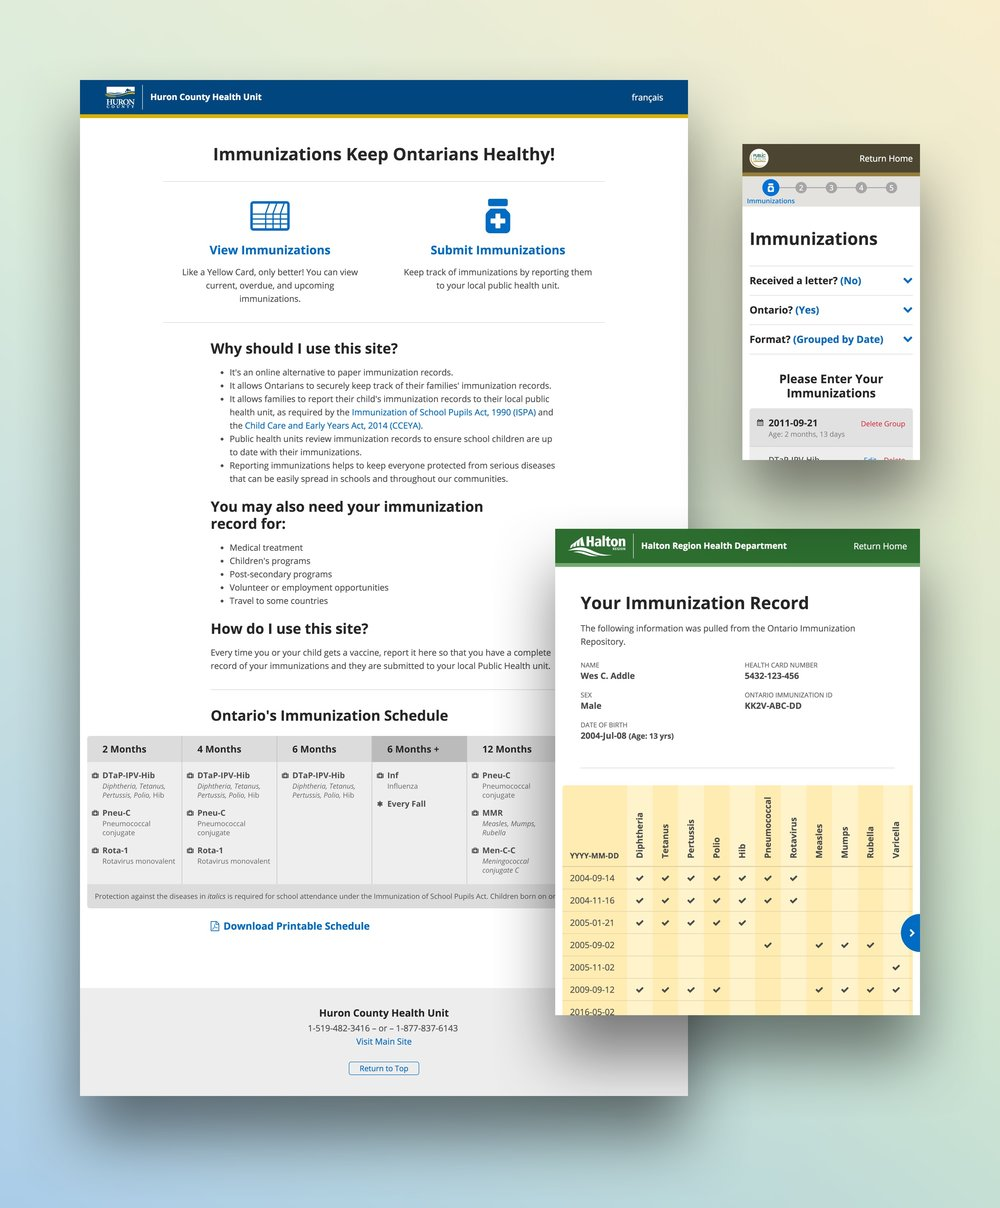 The finished v2 product was responsive, AODA compliant, and provided an improved user experience.